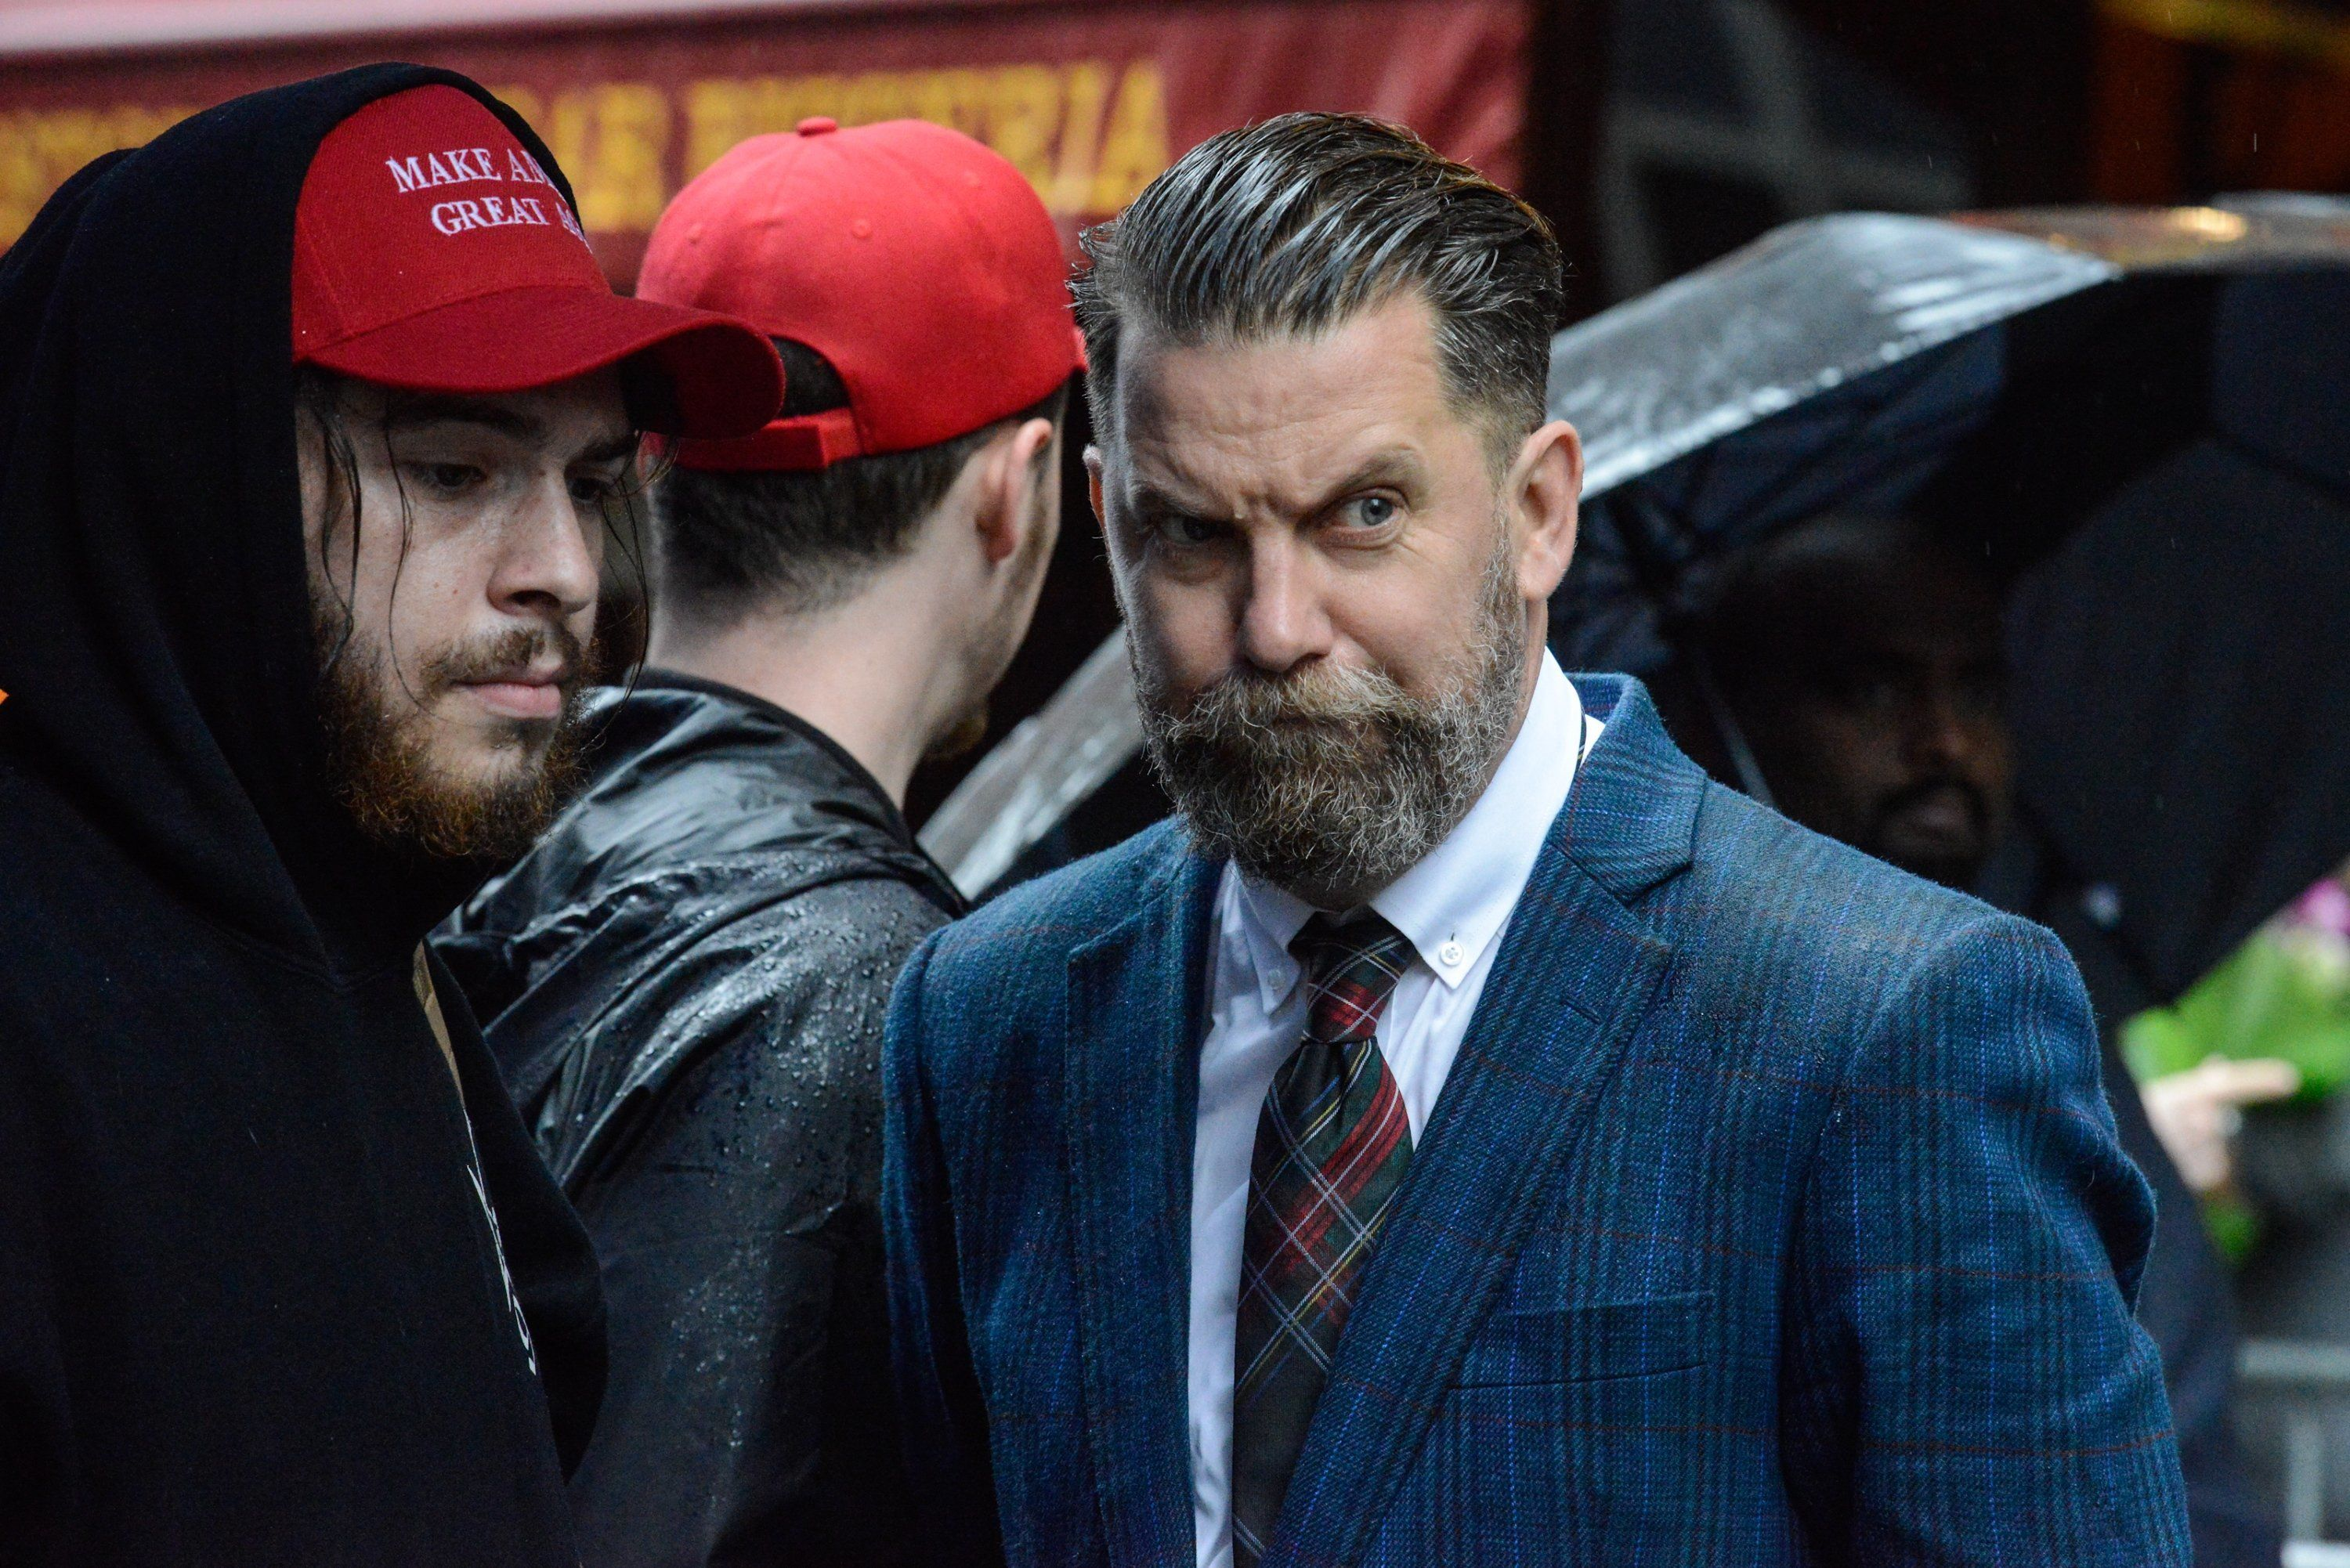 Gavin McInnes (right), the leader of the neo-fascist gang the Proud Boys, at a 2017 anti-Muslim demonstration...